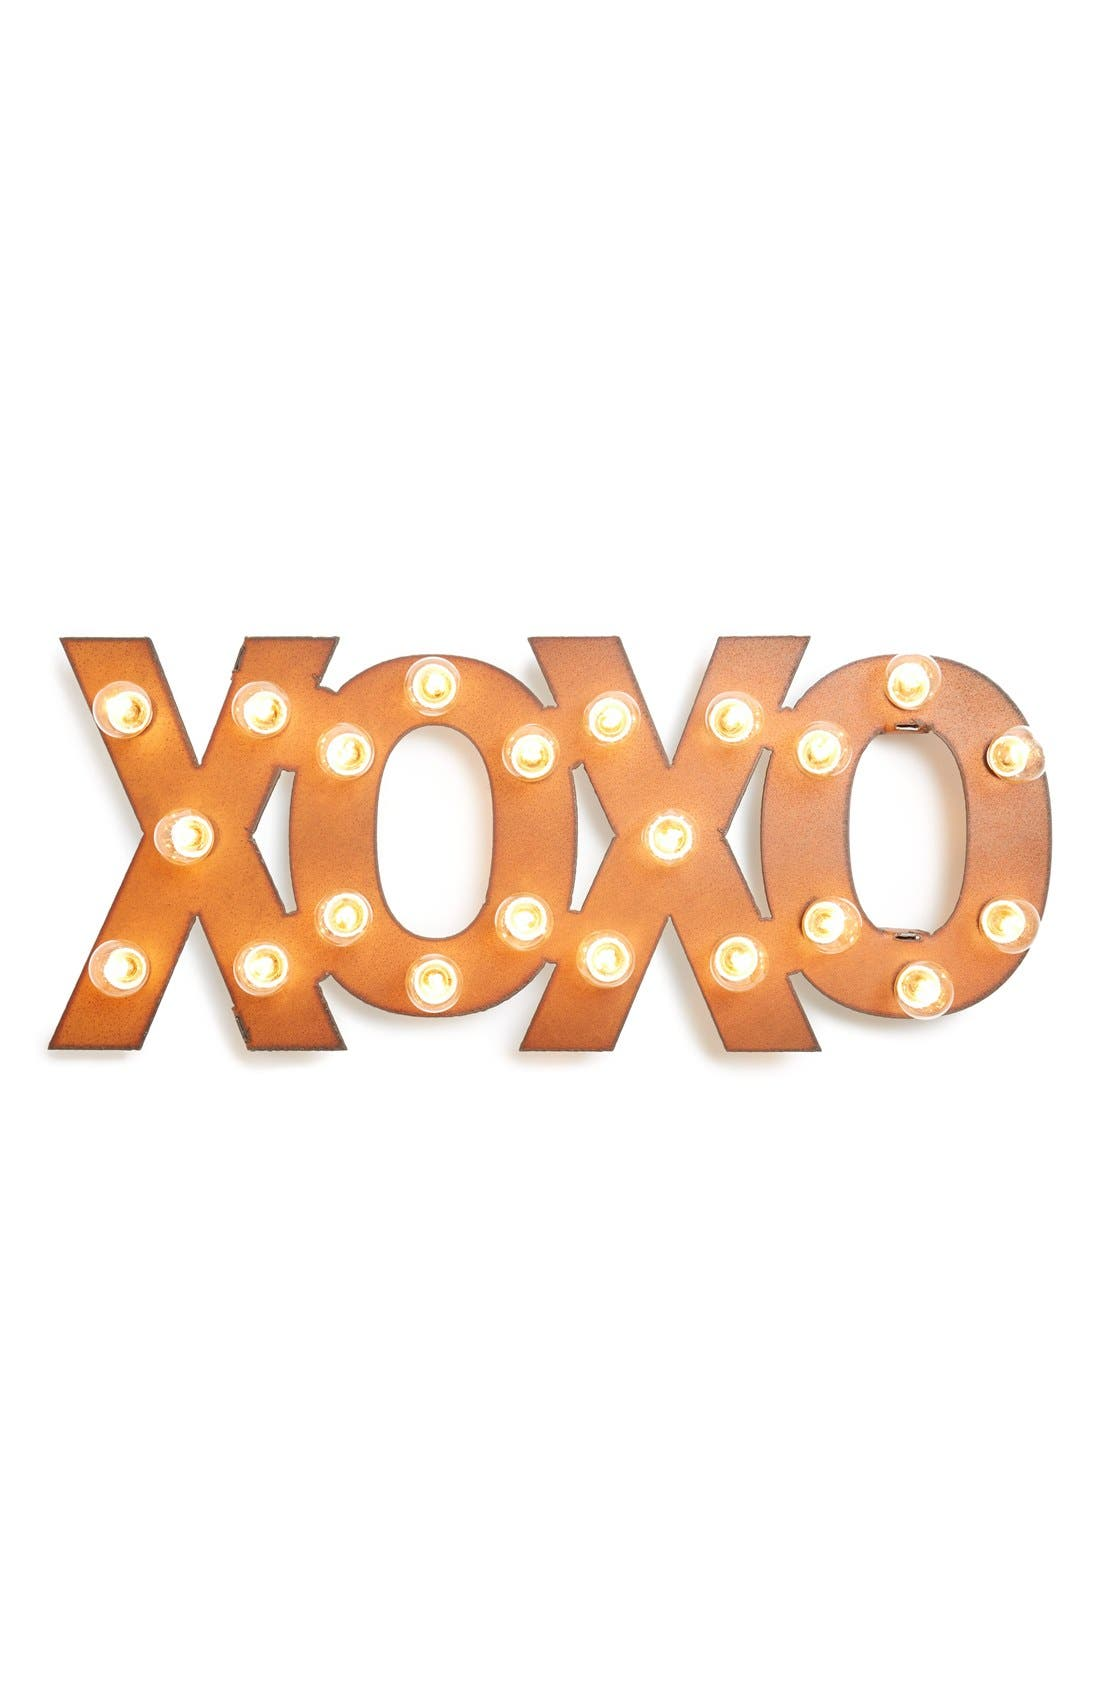 'Marquee Lights - XOXO' Recycled Metal Sign,                             Main thumbnail 1, color,                             220